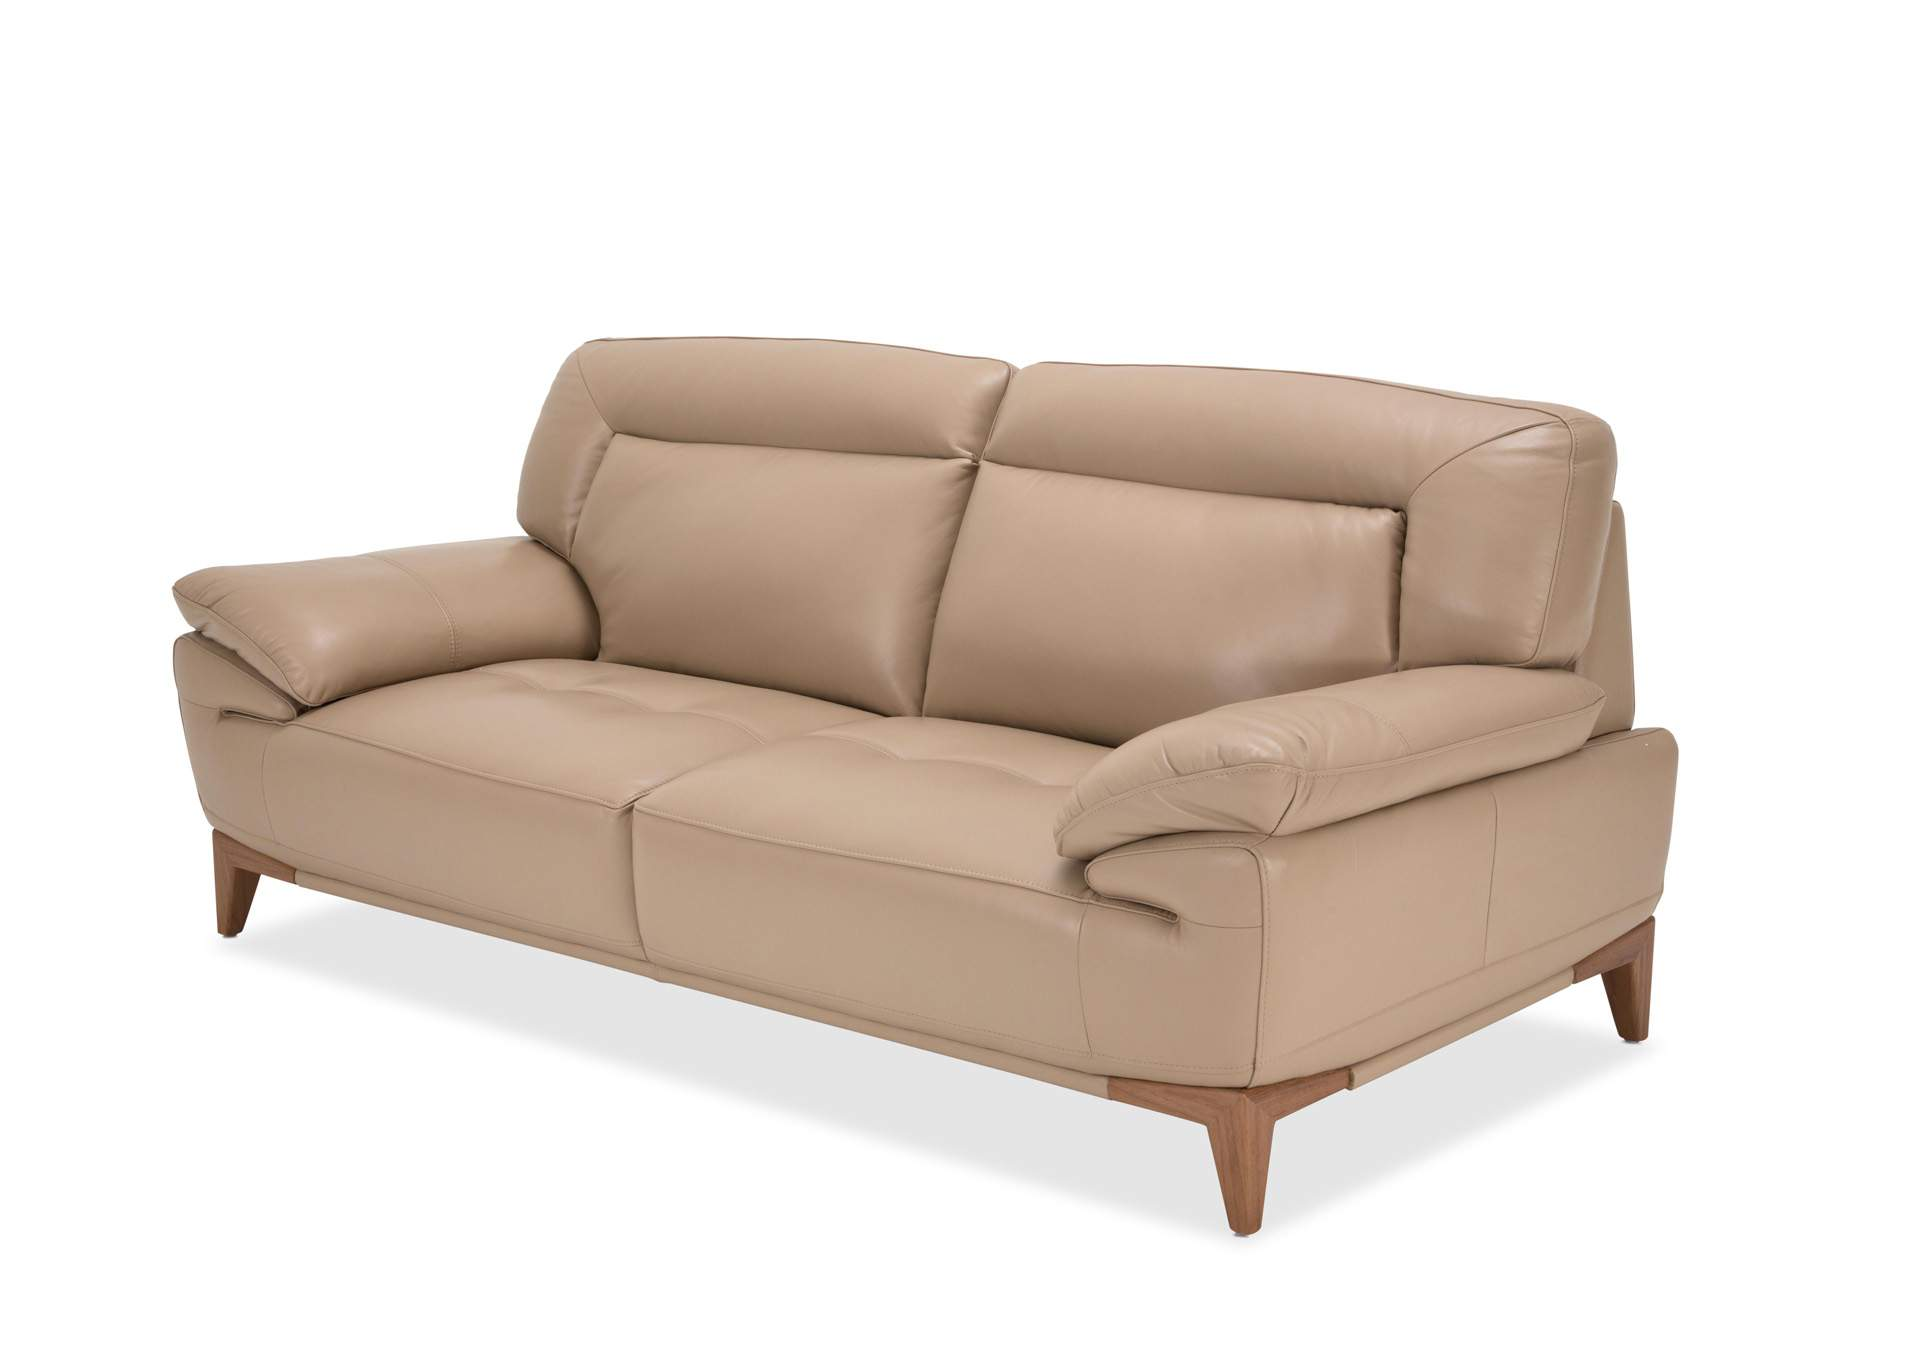 Premier Furniture Gallery Turano Taupe Leather Sofa